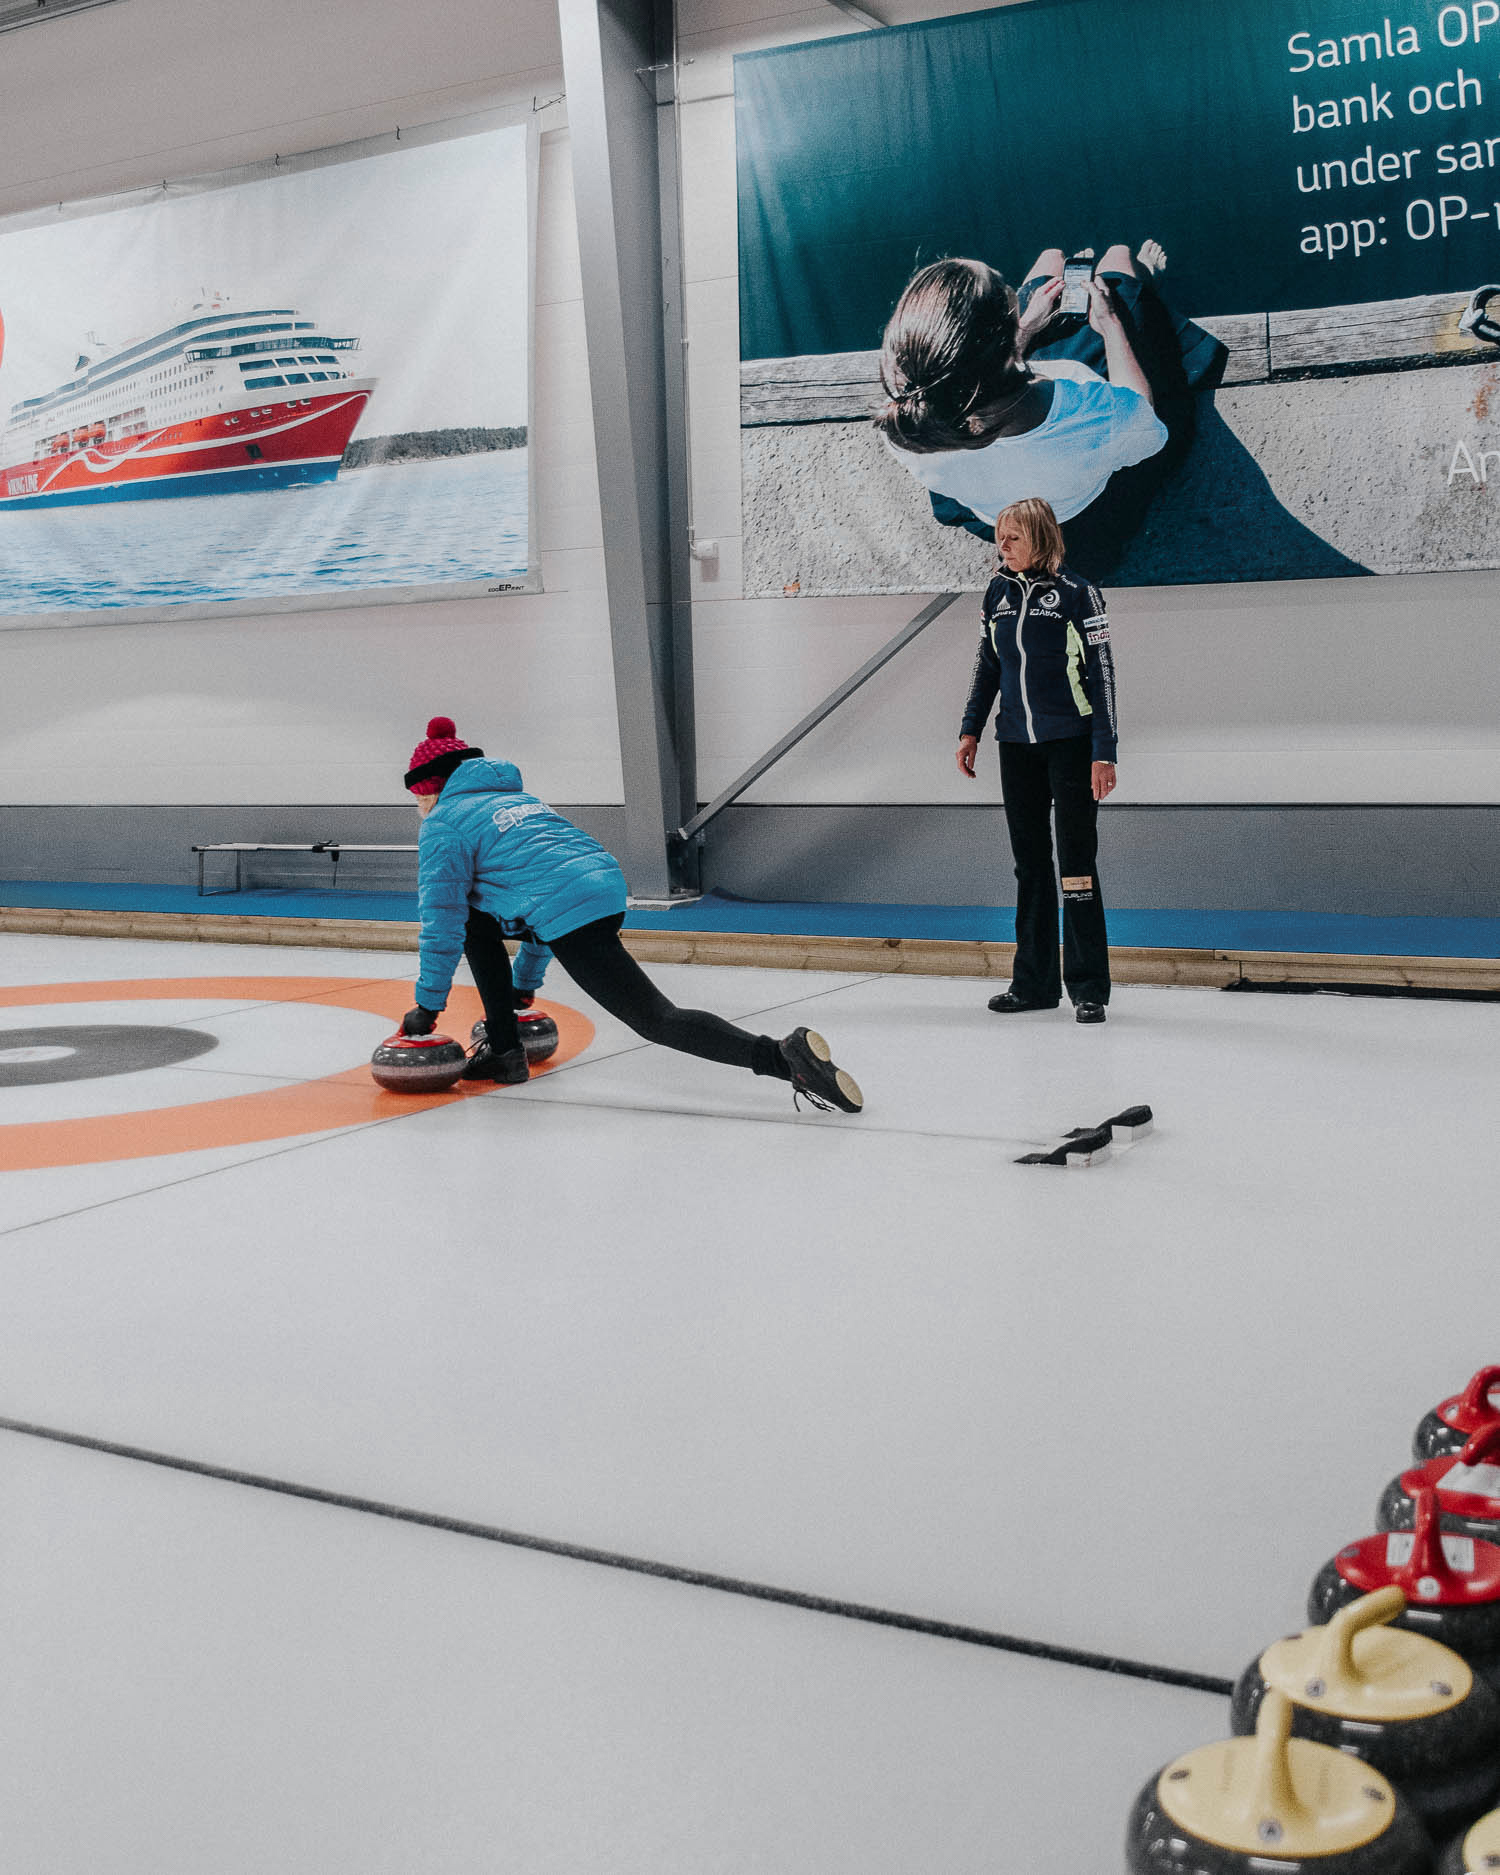 Curling Åland | Things to do in the Åland Islands